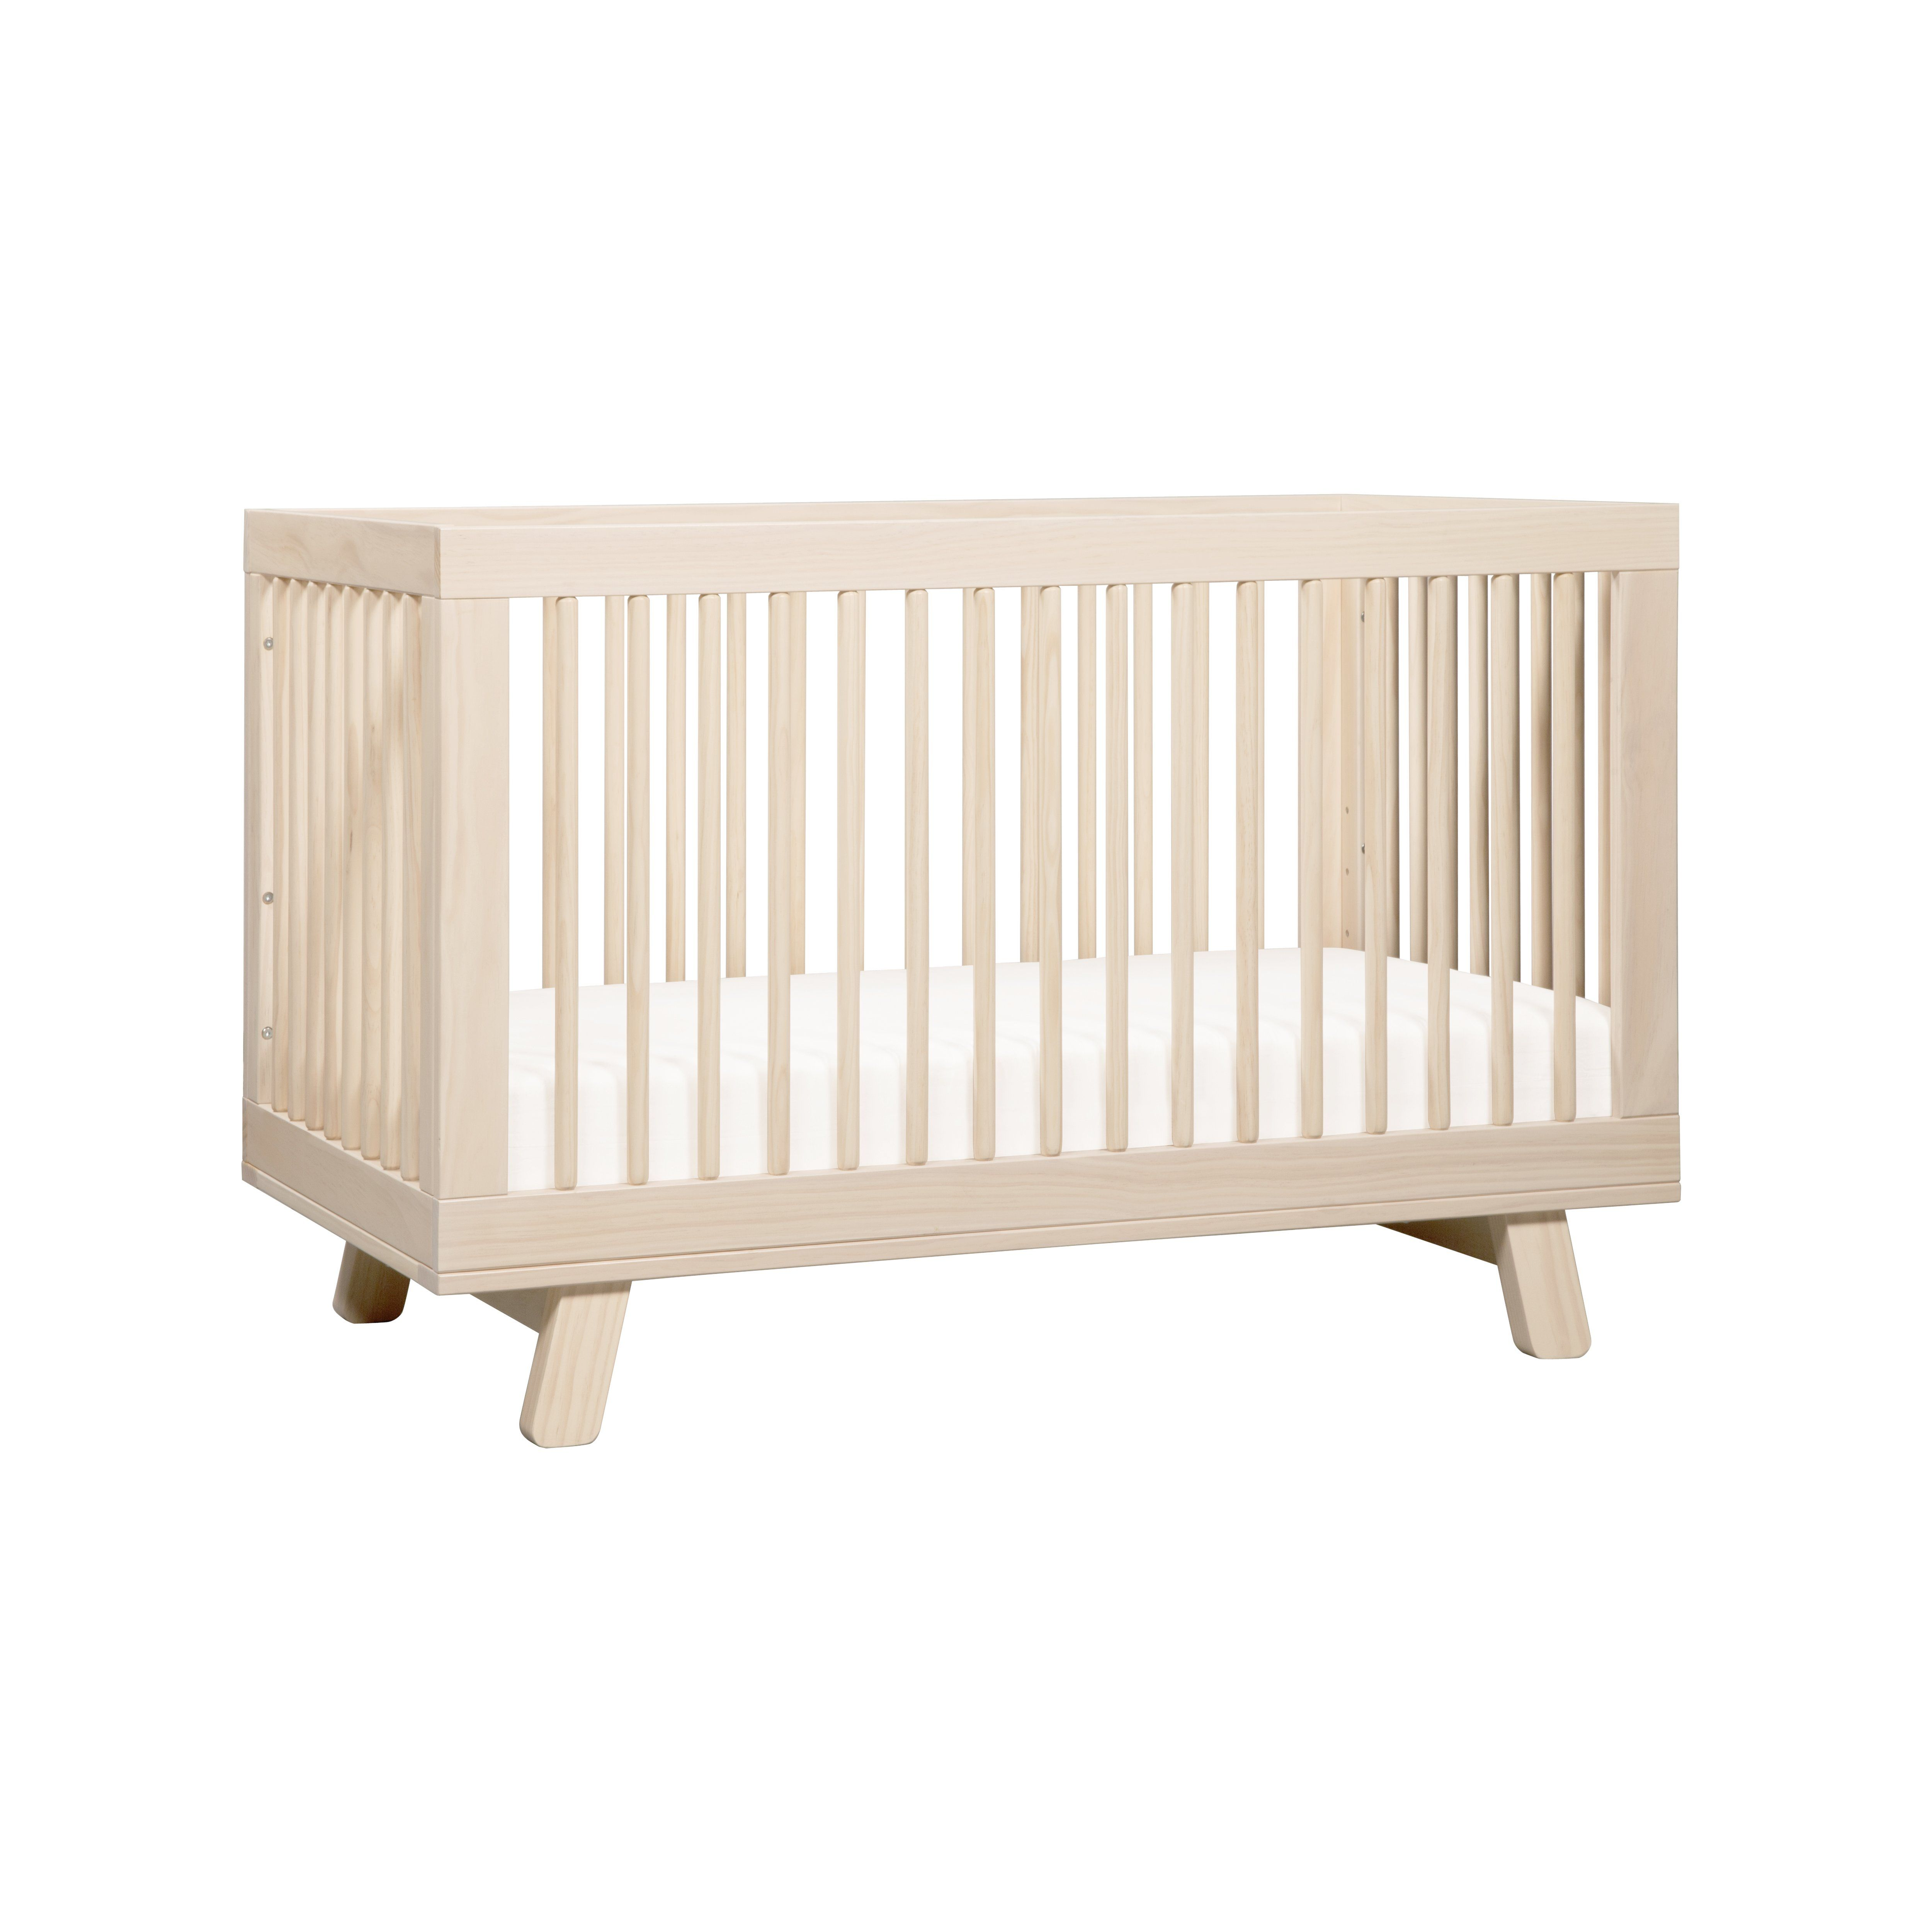 Hudson 3in1 Standard Convertible Crib Cribs